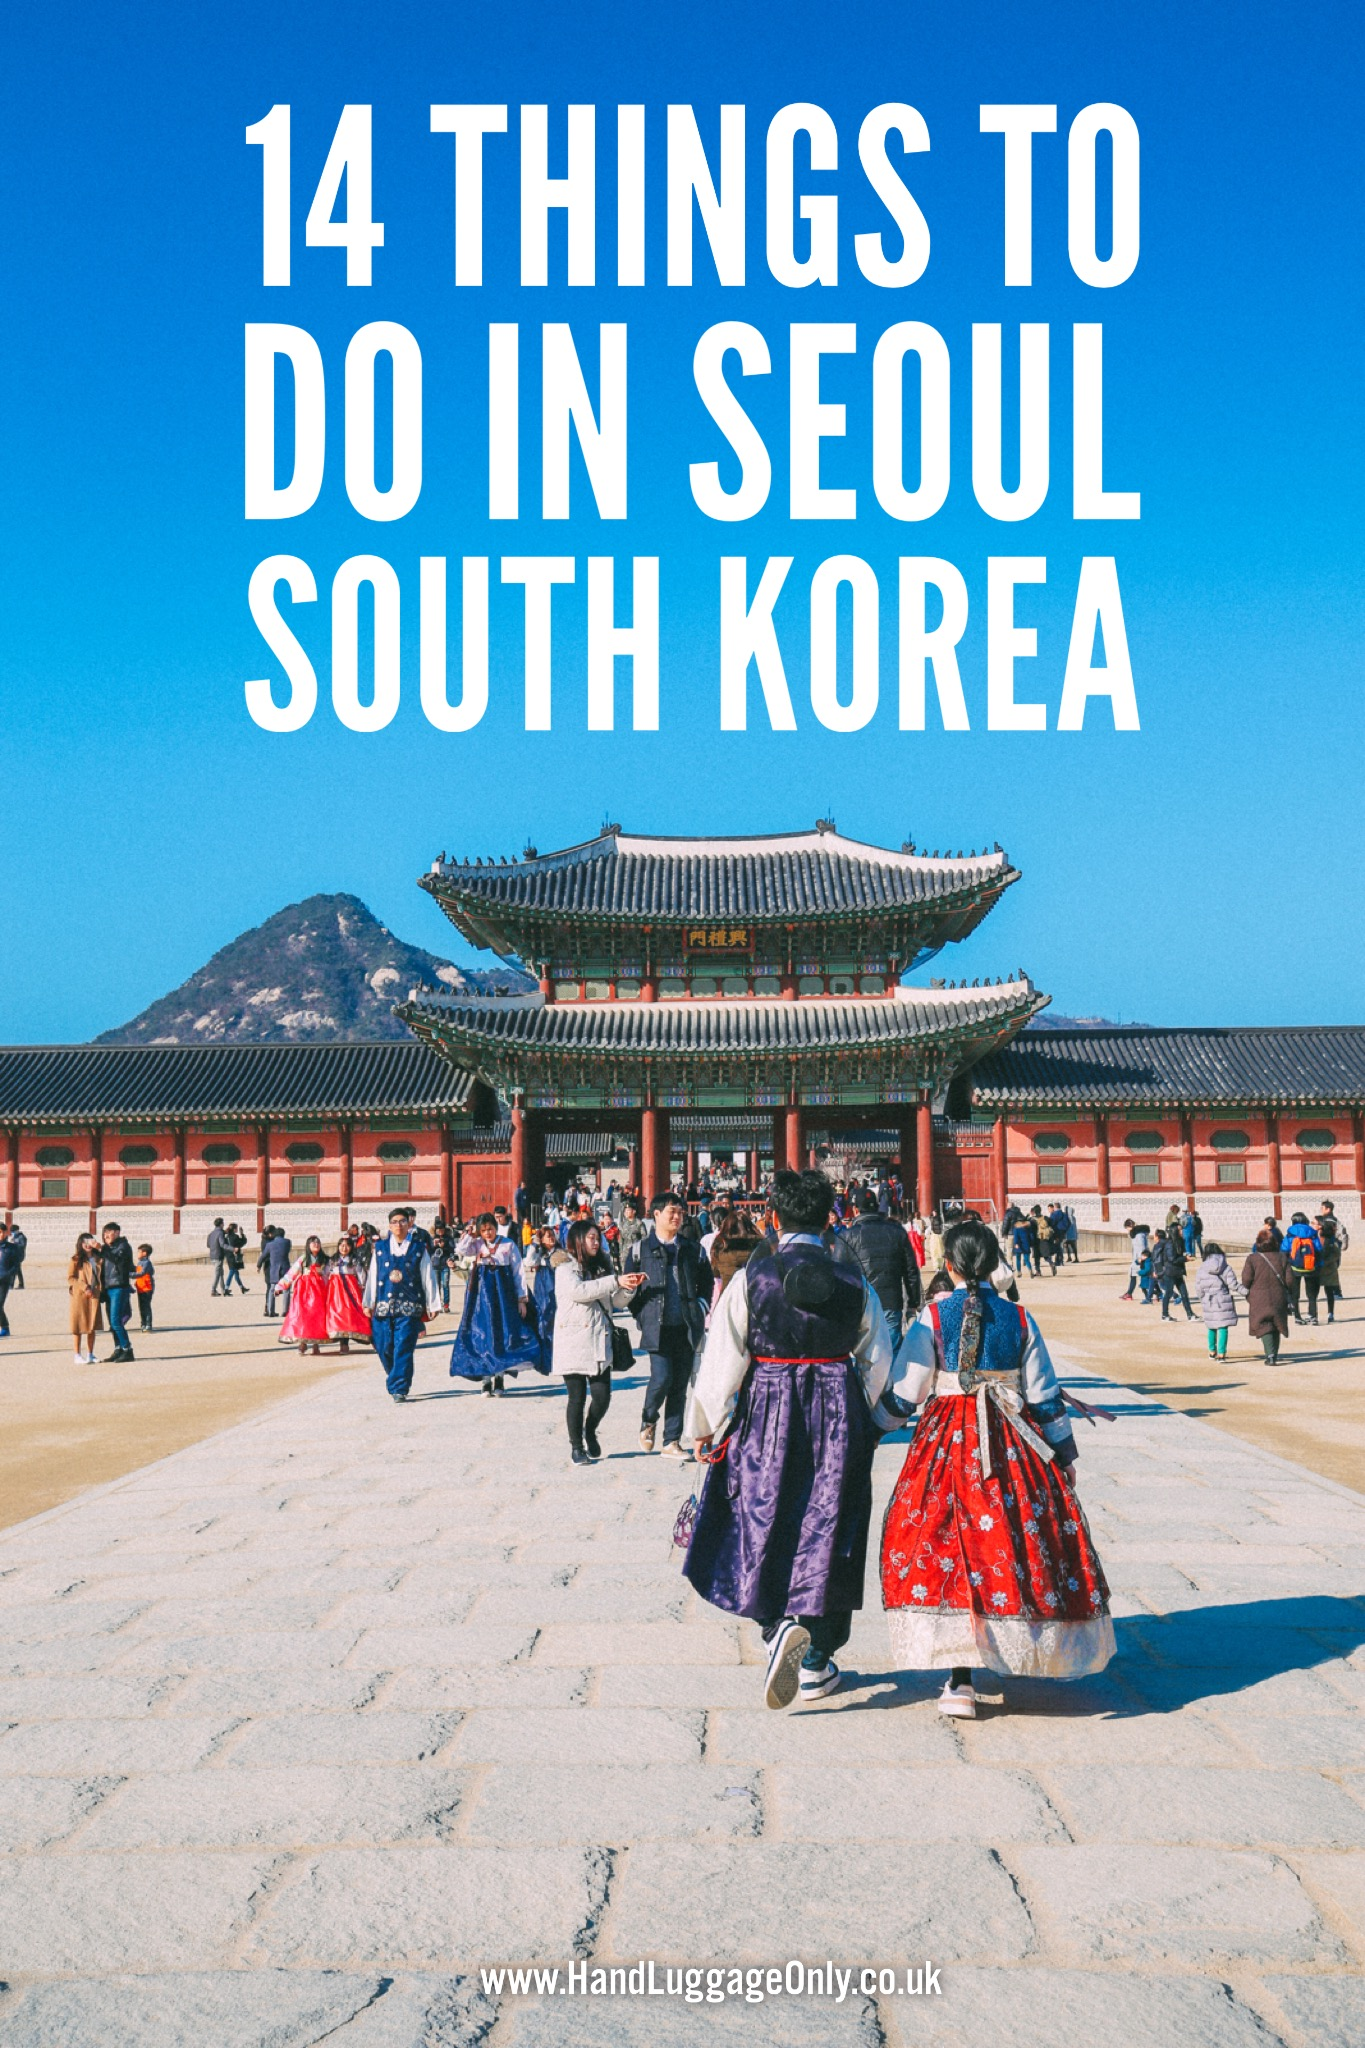 14 Fantastic Things To Do In Seoul, South Korea